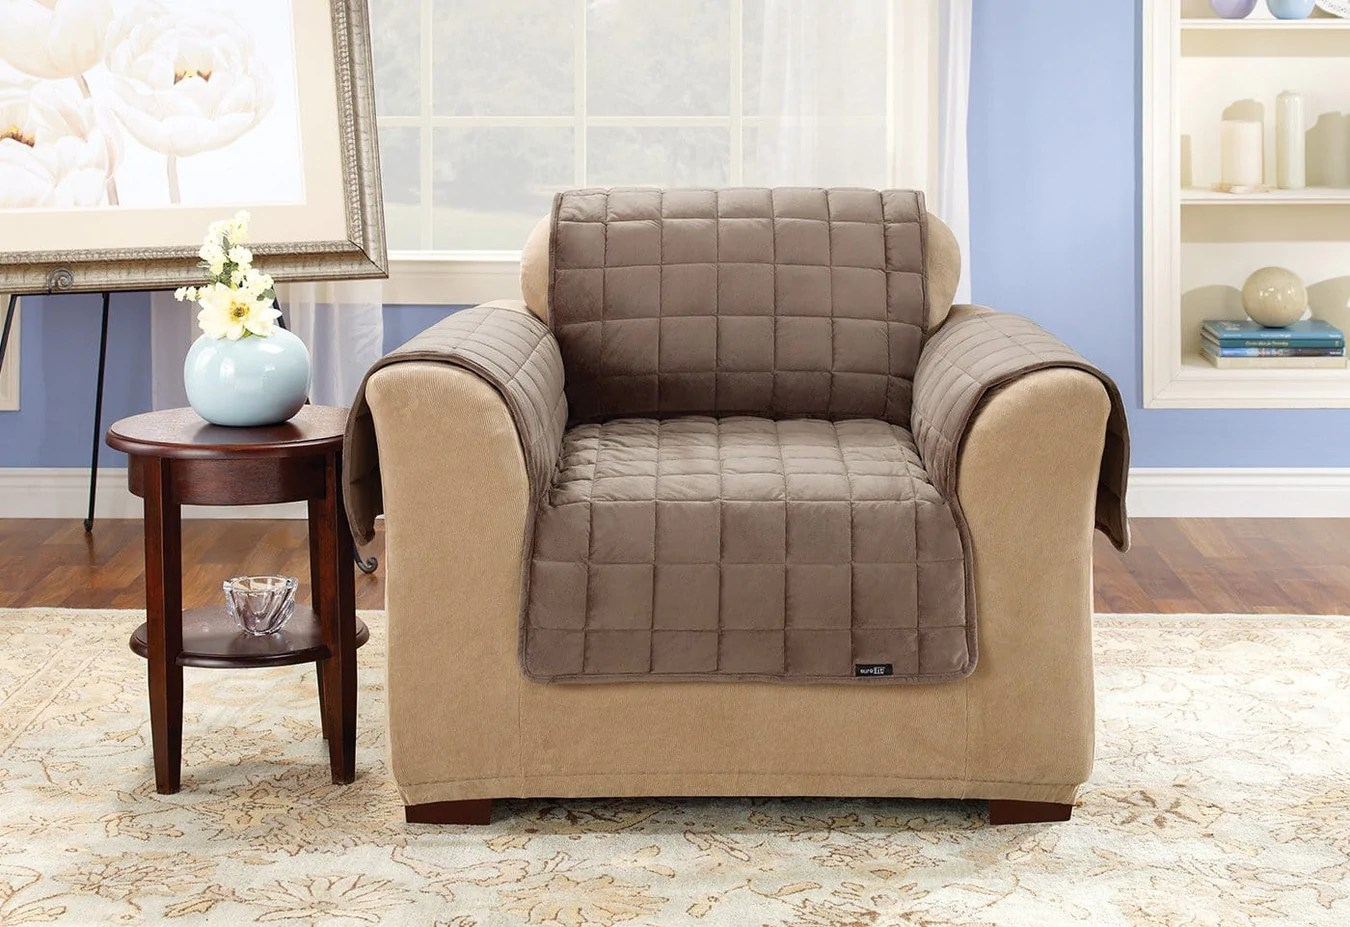 Quilted Lounge Chair Covers Deluxe Comfort Chair Furniture Cover With Arms Machine Washable